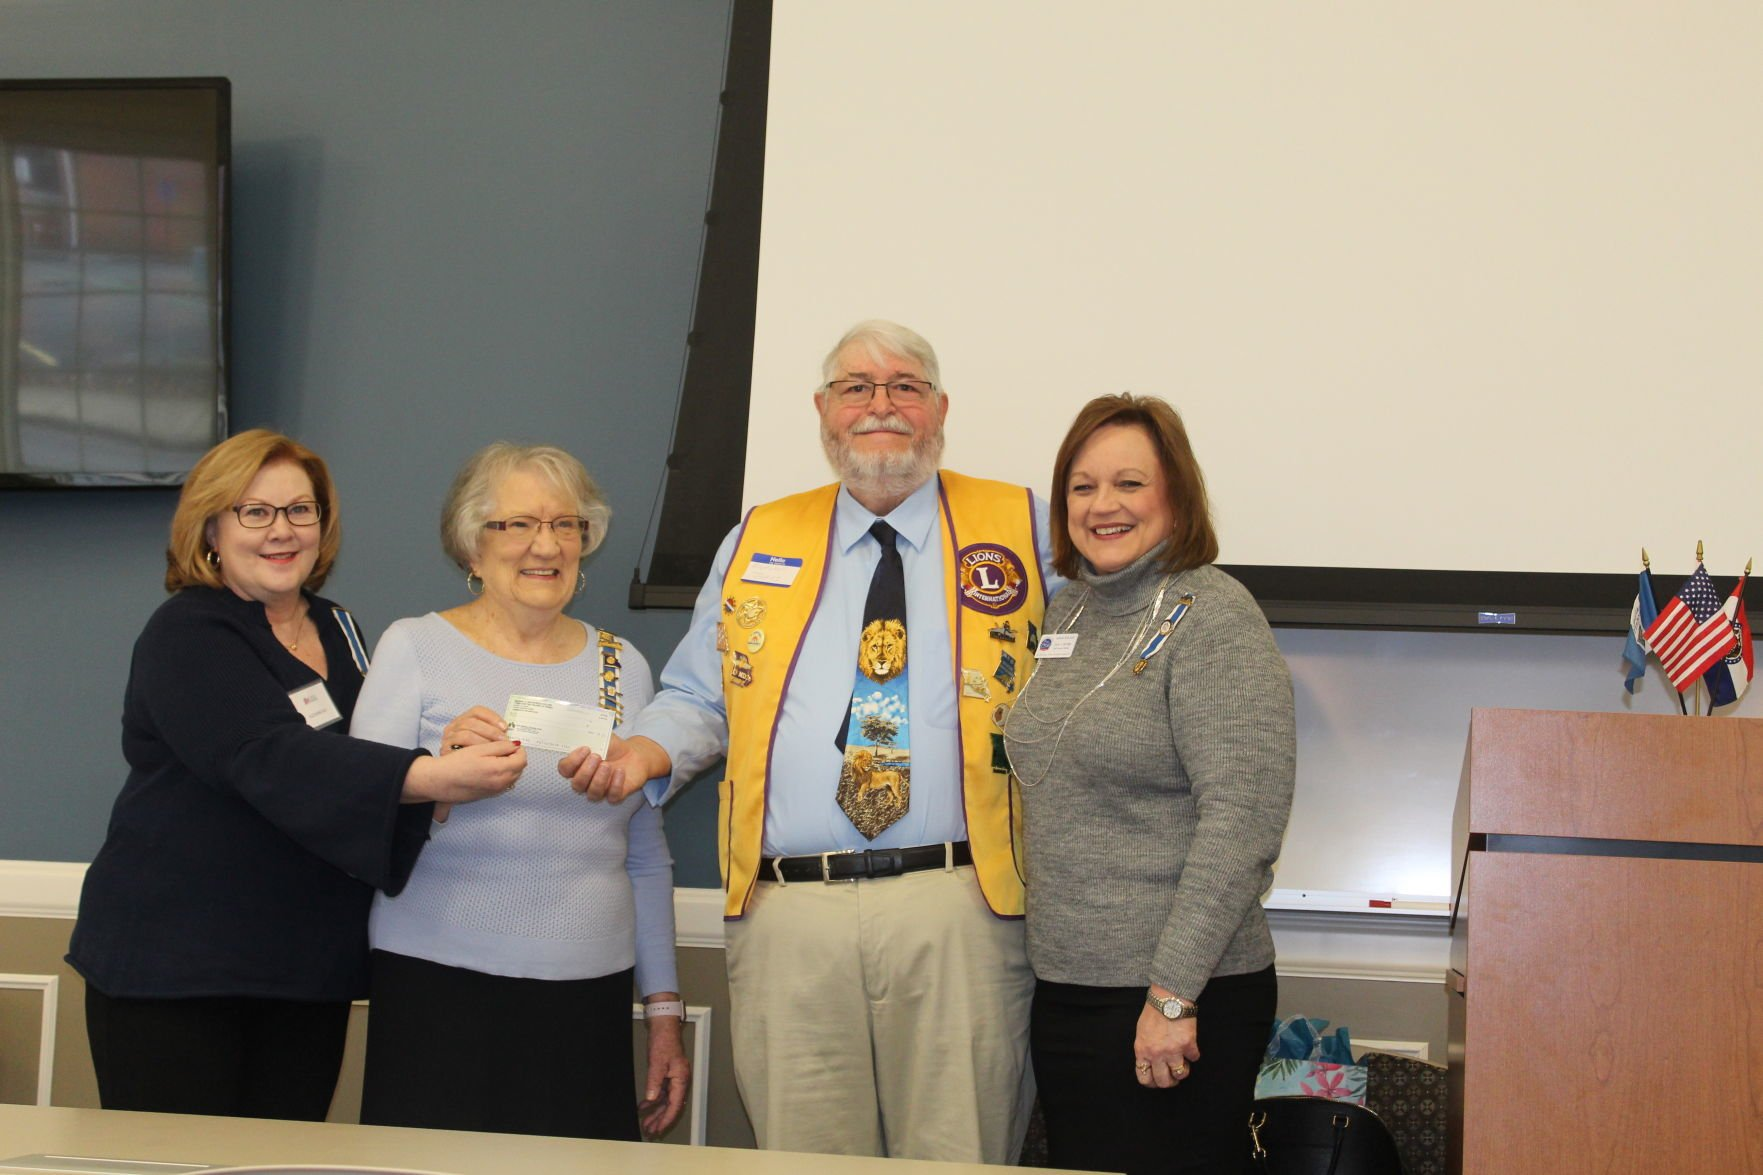 Lion's Club donates to DAR project